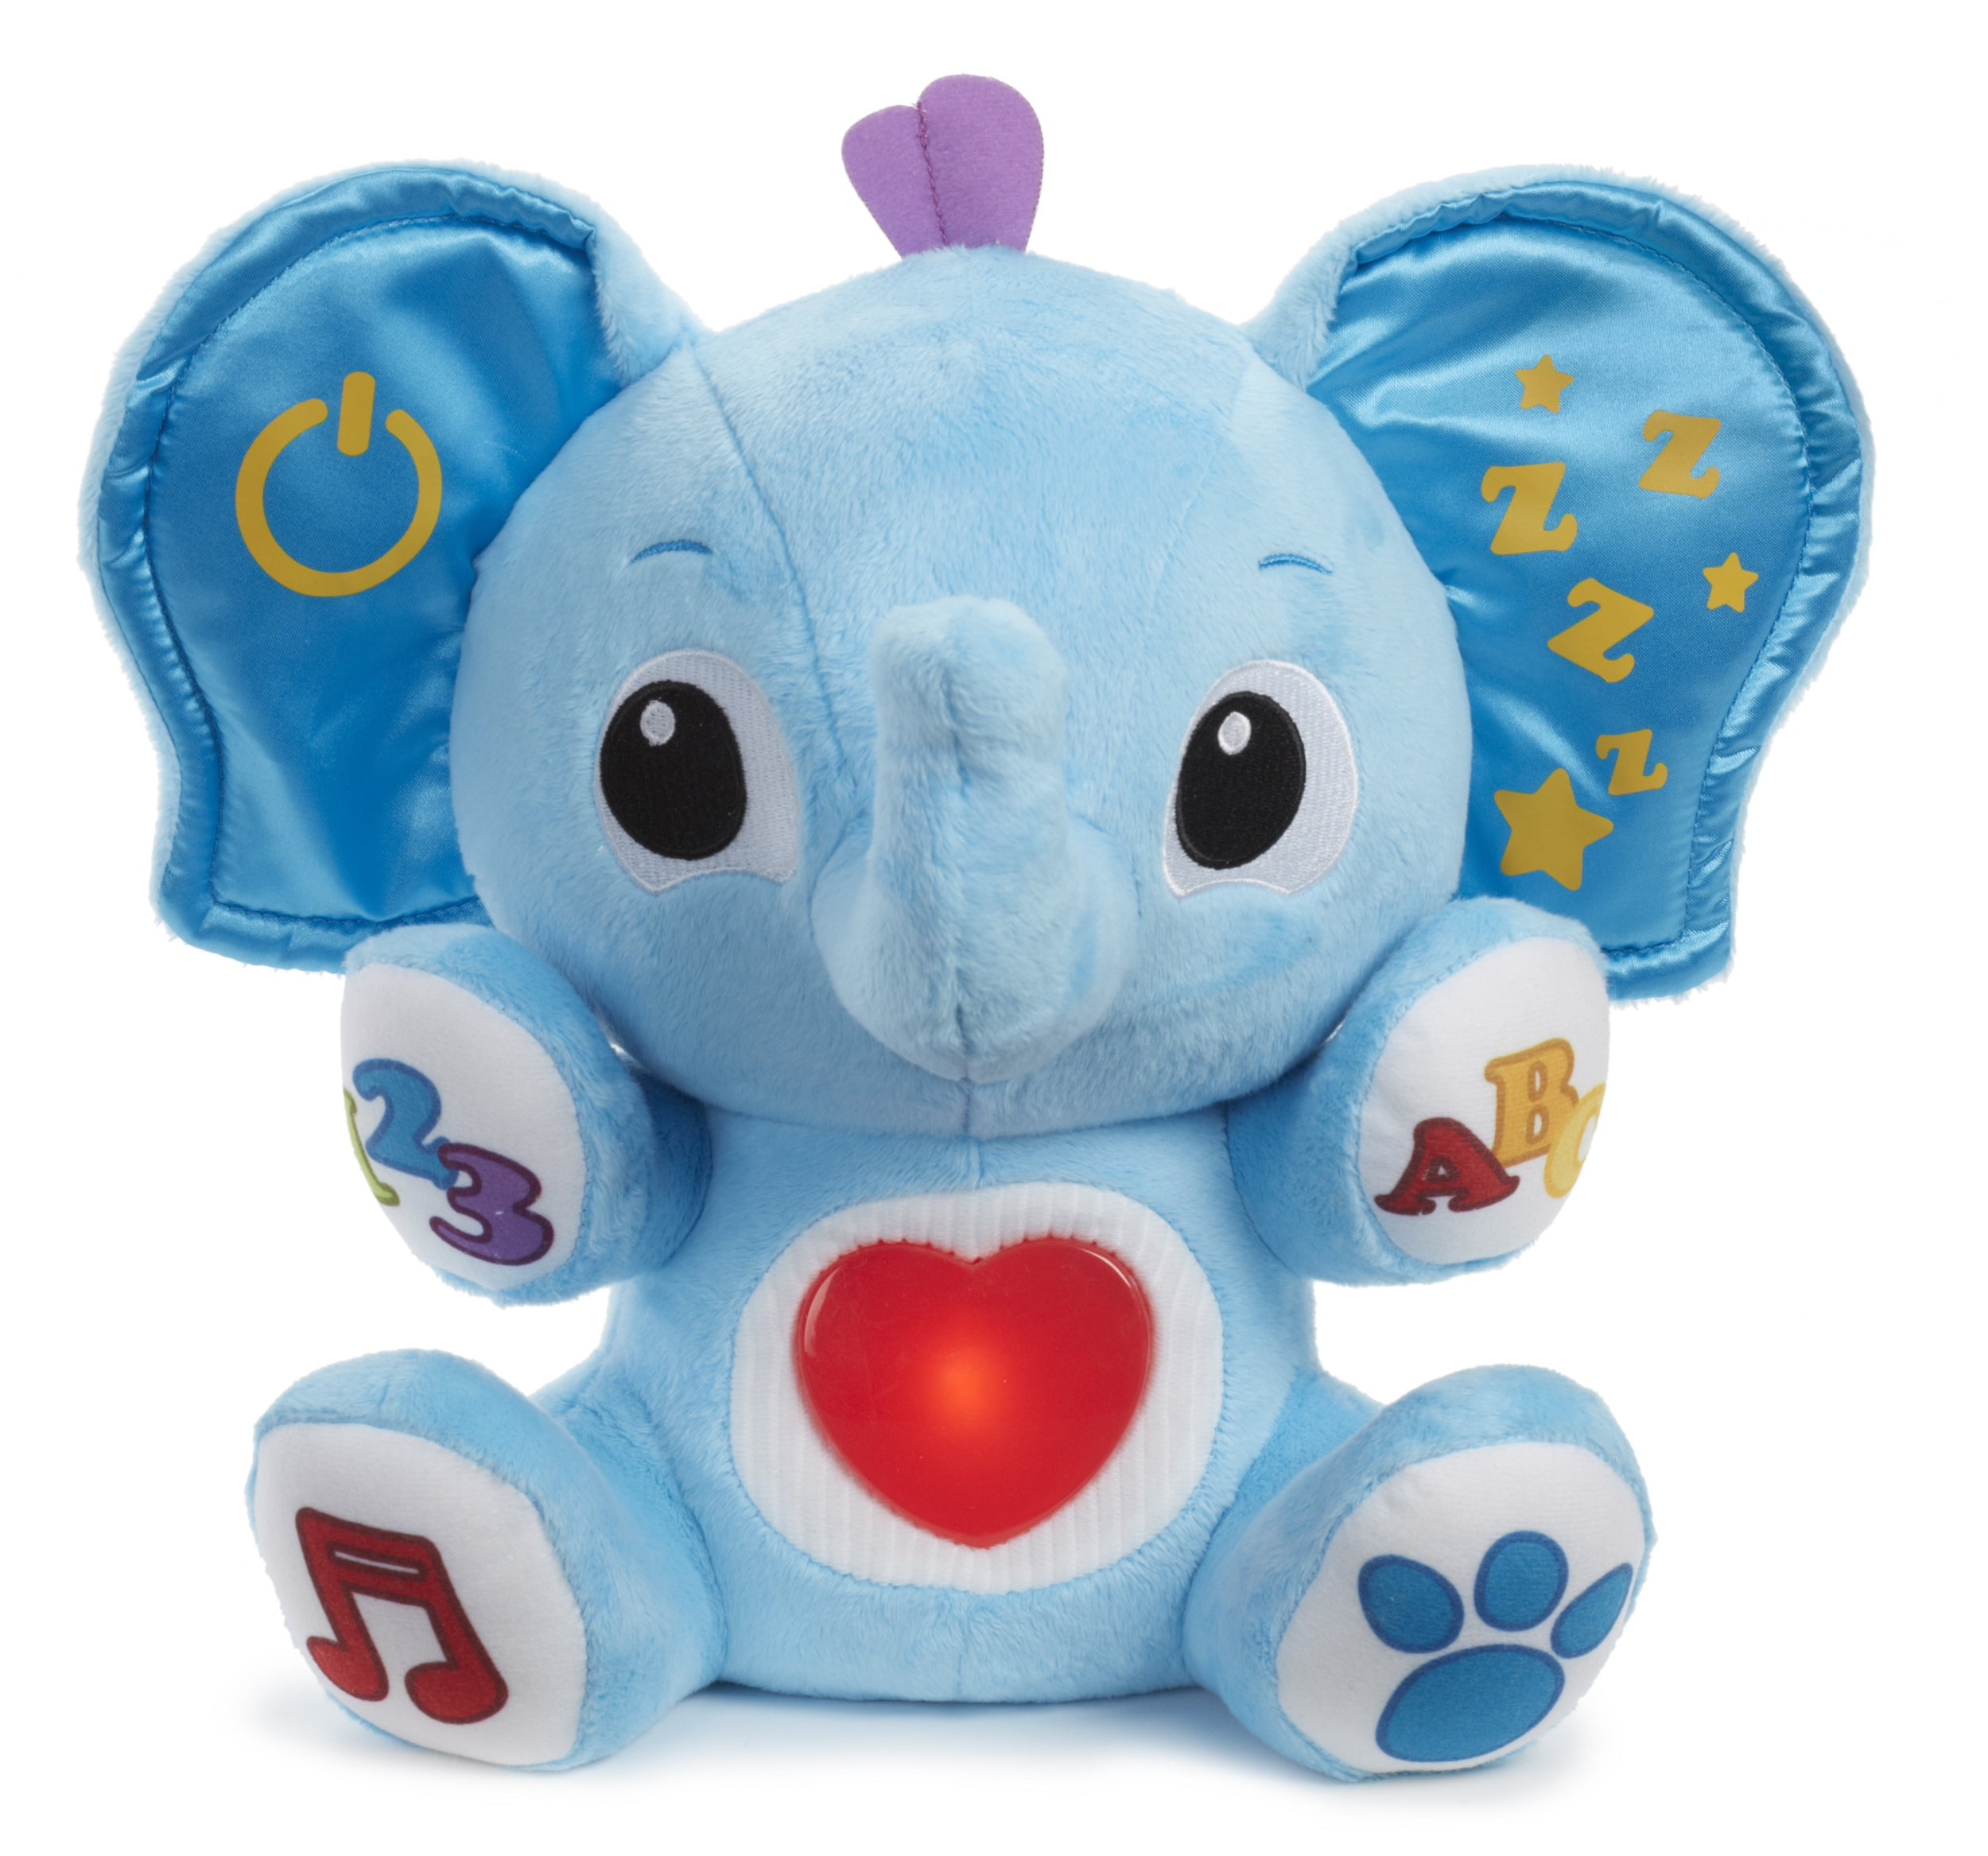 Little Tikes My Buddy- Triumphant Learning Toy, Plush by Little Tikes